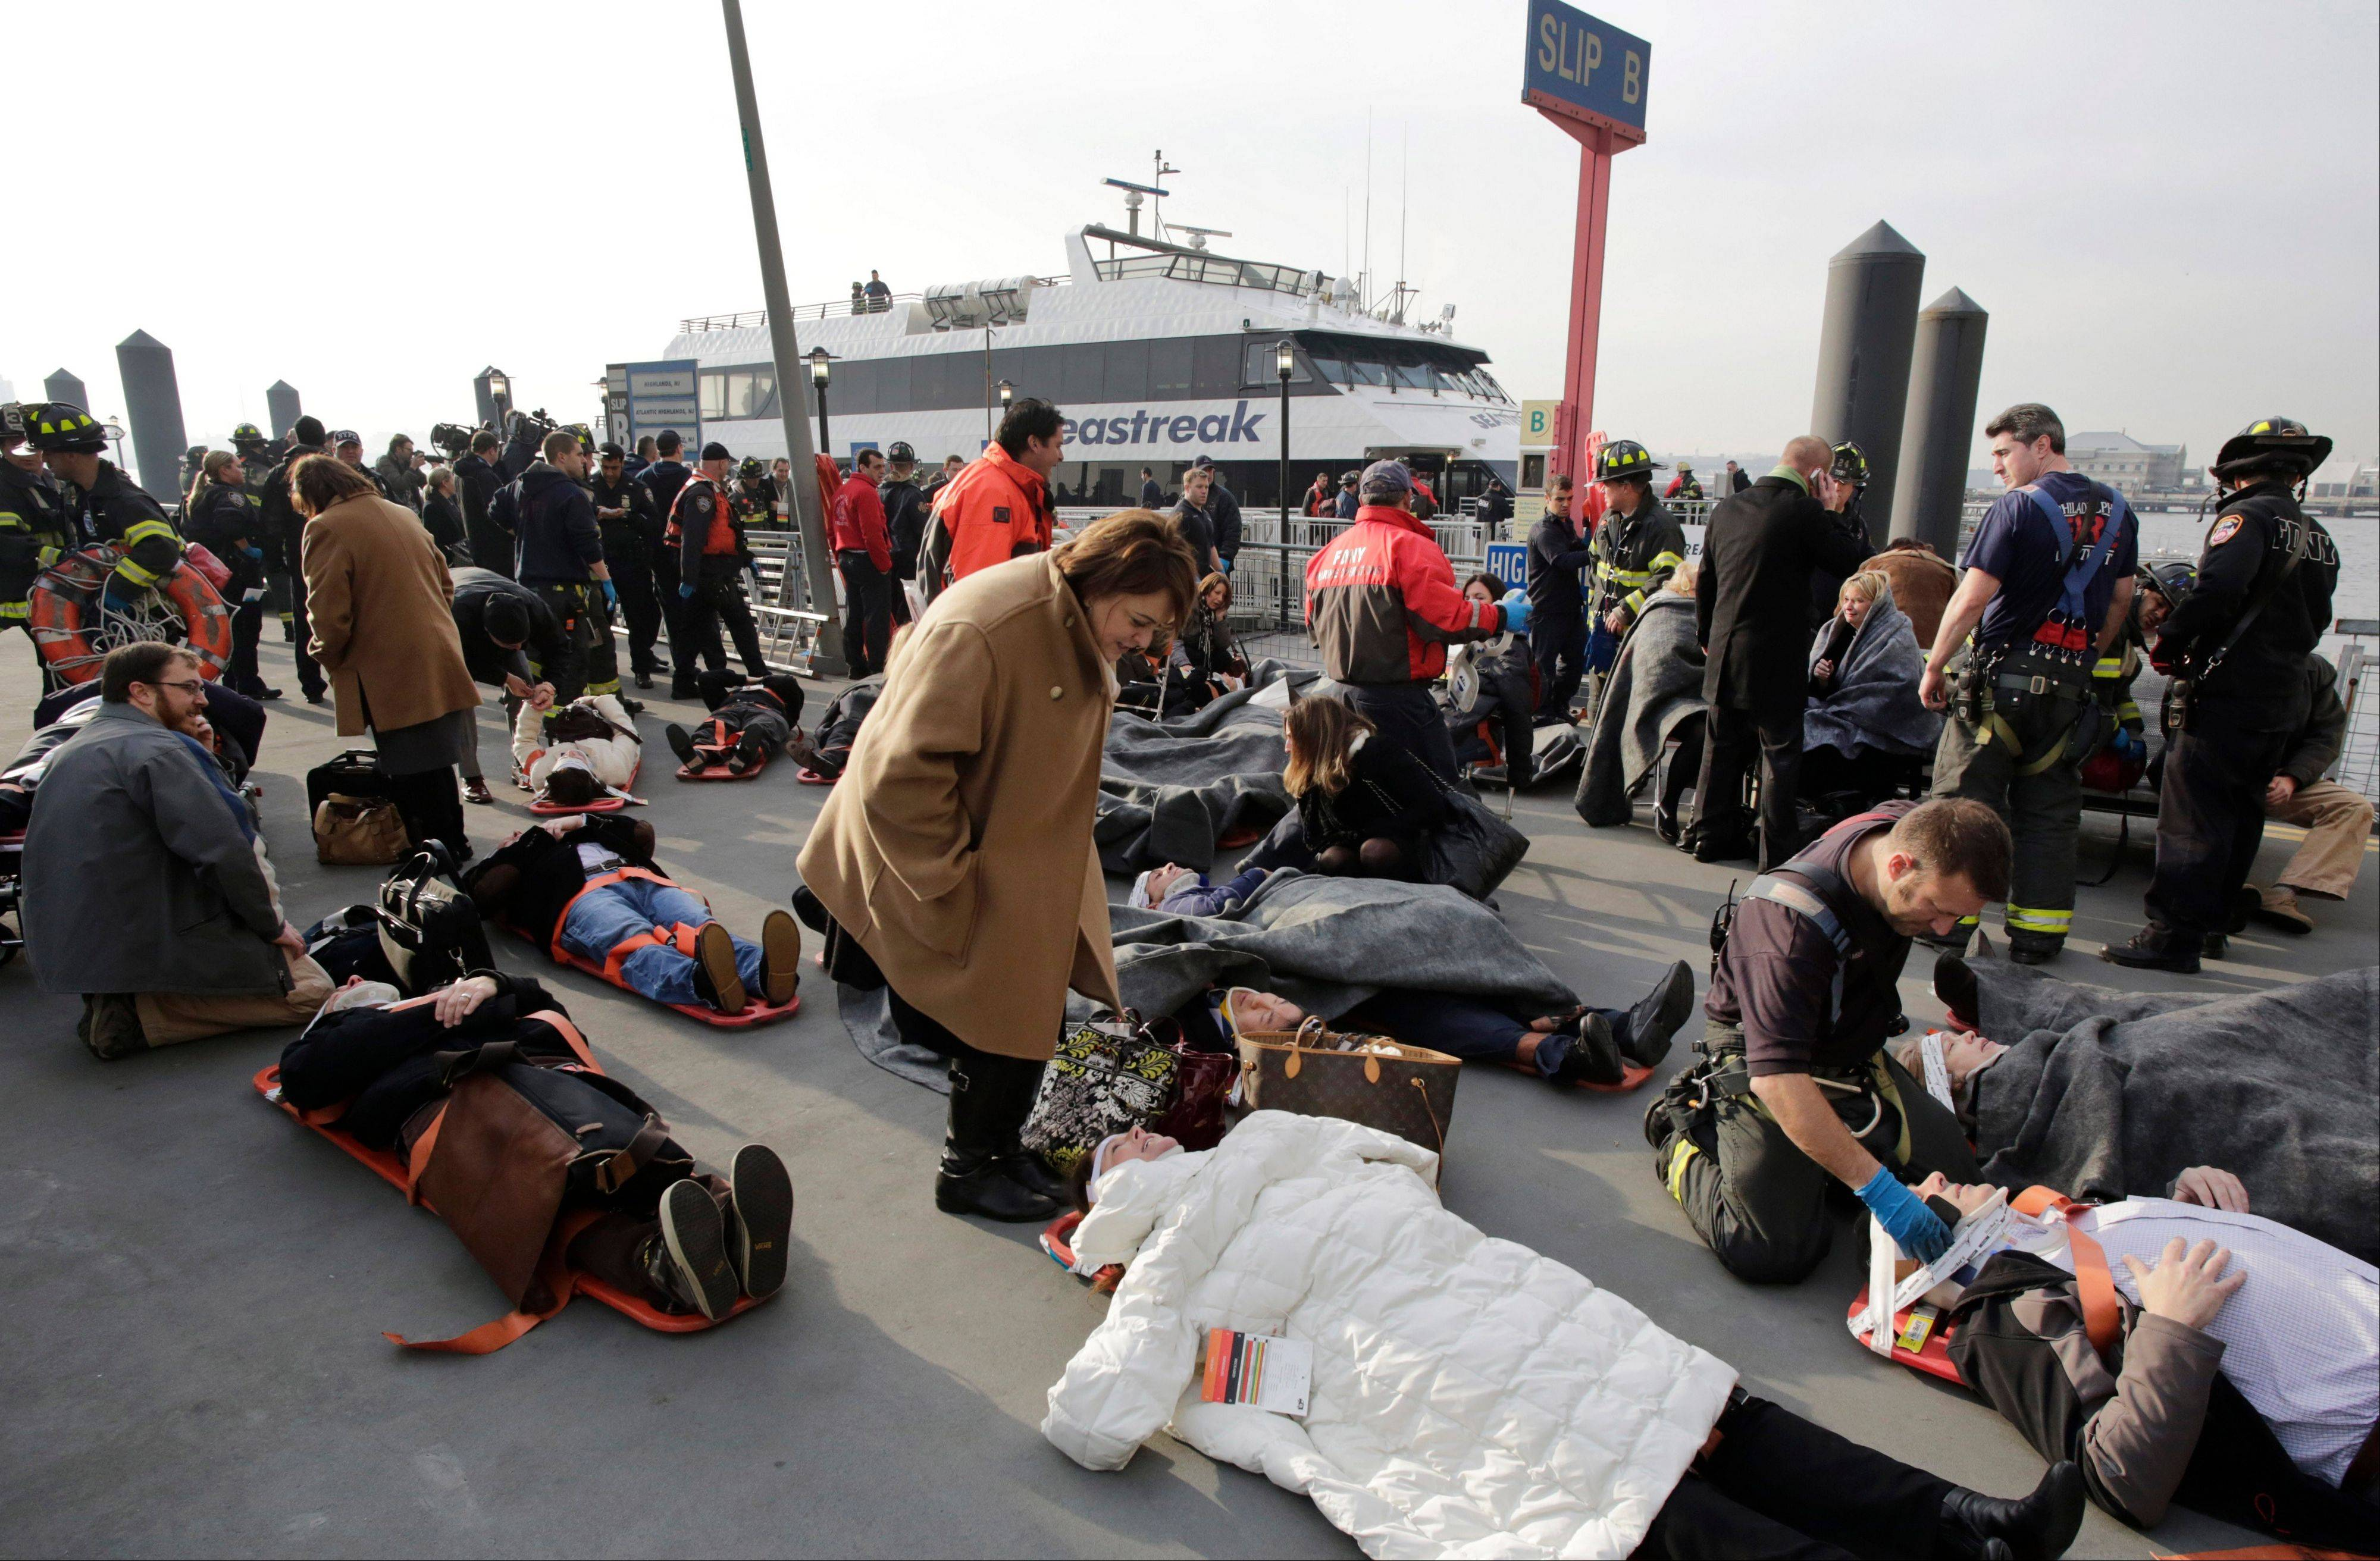 Victims of the Seastreak Wall Street ferry accident are aided by rescue personnel, Wednesday, Jan. 9, 2013 in New York. The ferry, rear, from New Jersey made a hard landing at the dock as it pulled up to lower Manhattan during Wednesday morning rush hour, injuring as many as 50 people, at least one critically, officials said.